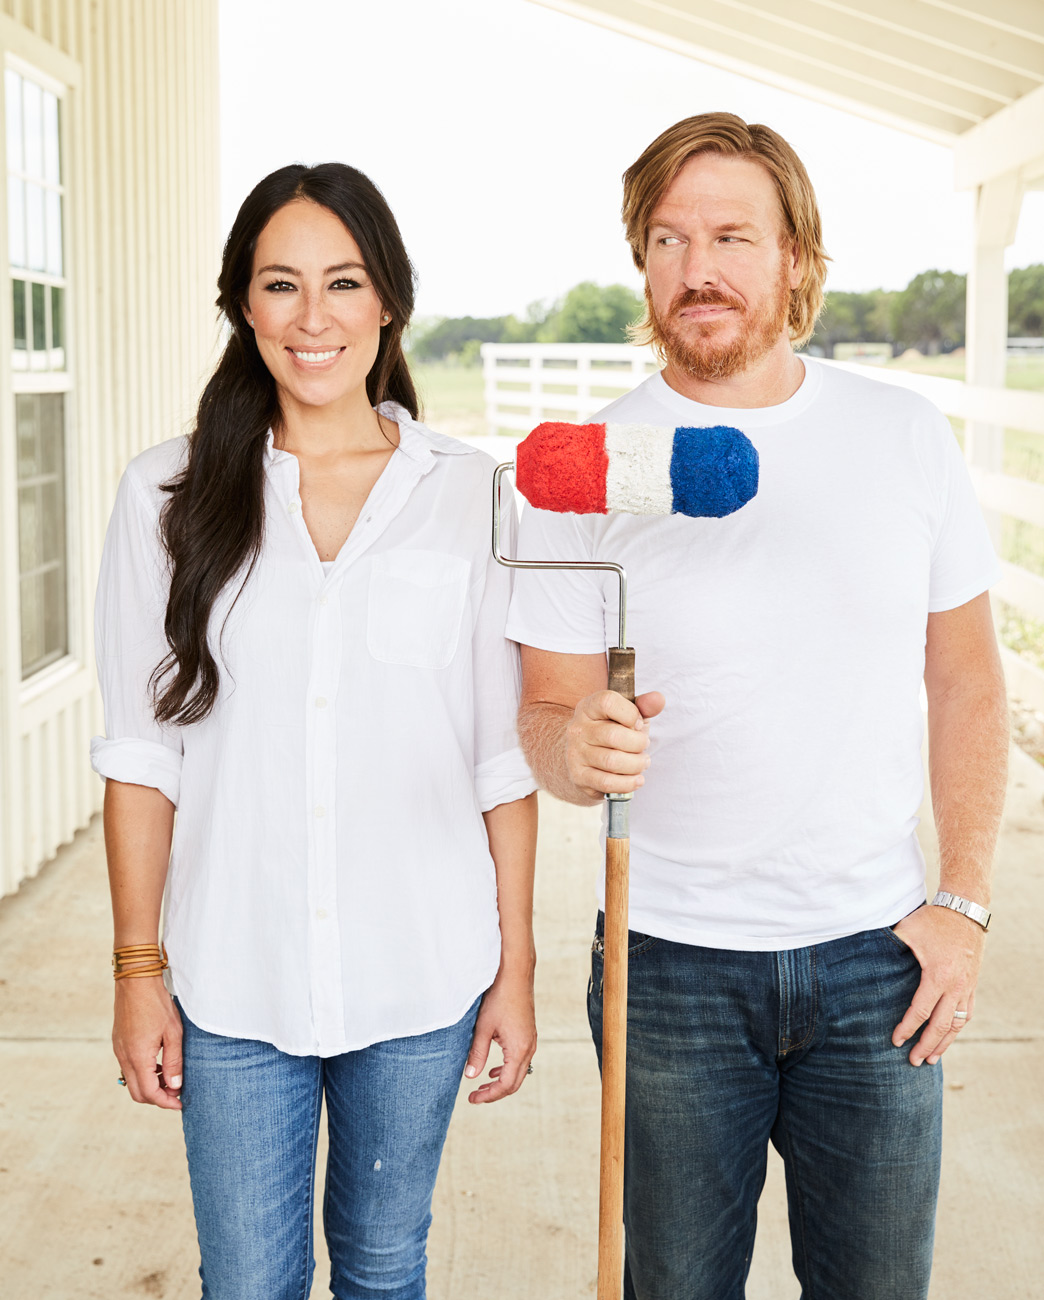 FixerUpper_3.jpg